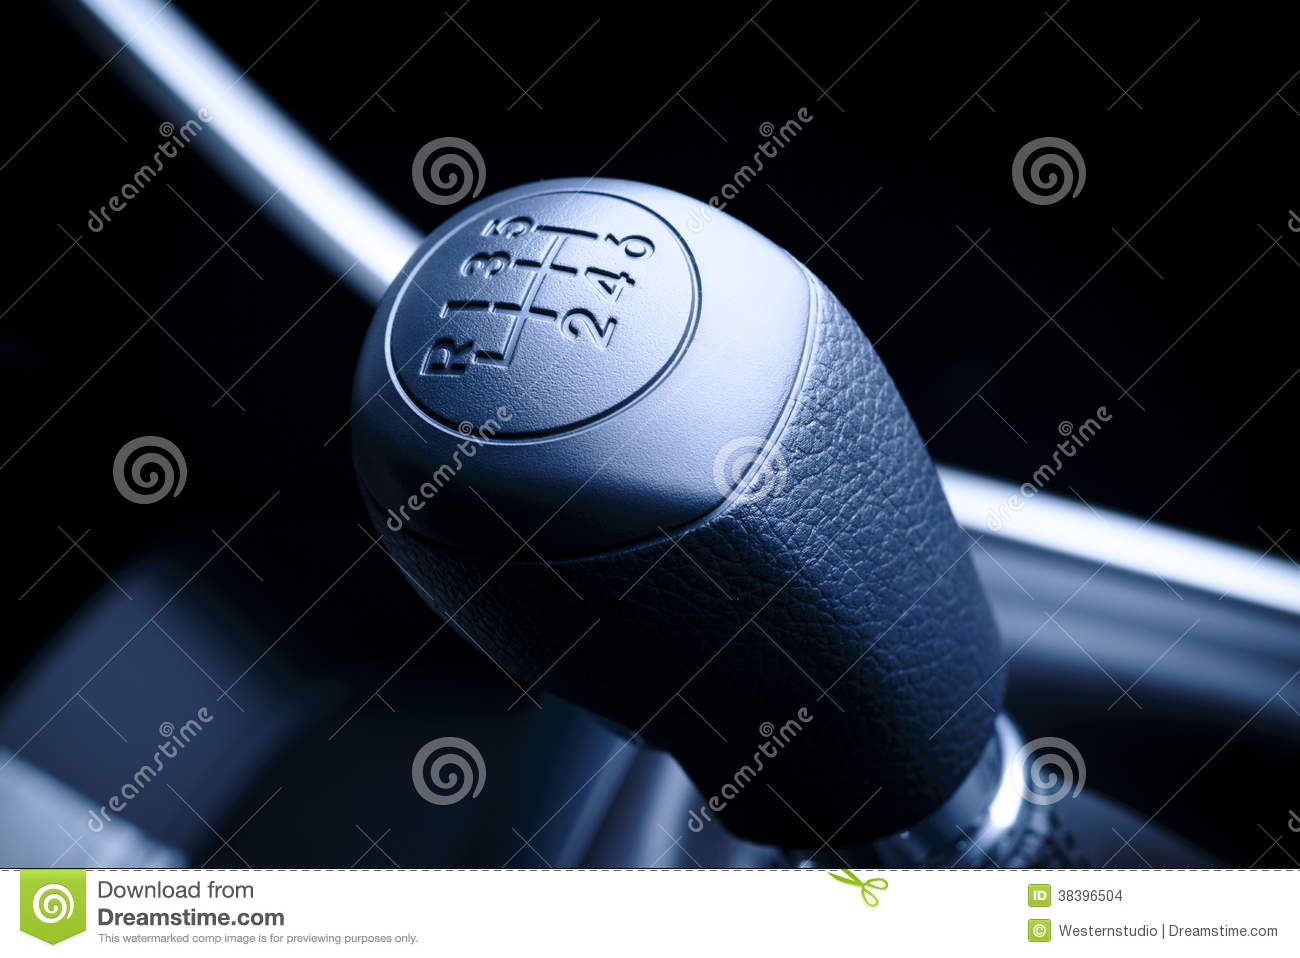 Lever of manual transmission in auto, vehicle.